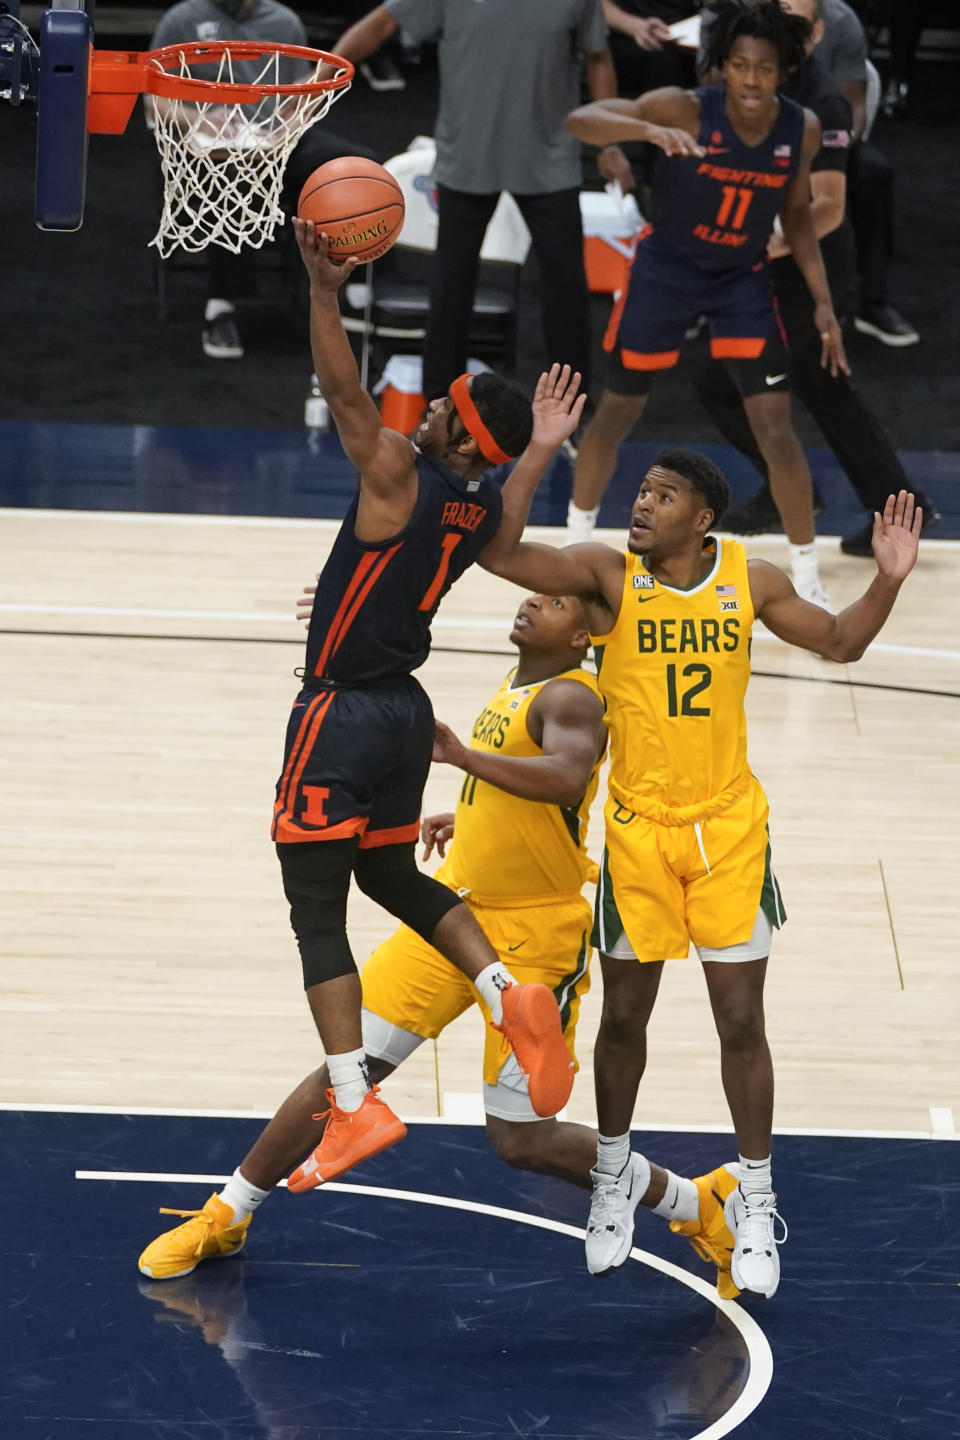 Illinois' Trent Frazier (1) puts up a shot against Baylor's Jared Butler (12) and Mark Vital (11) during the first half of an NCAA college basketball game, Wednesday, Dec. 2, 2020, in Indianapolis. (AP Photo/Darron Cummings)